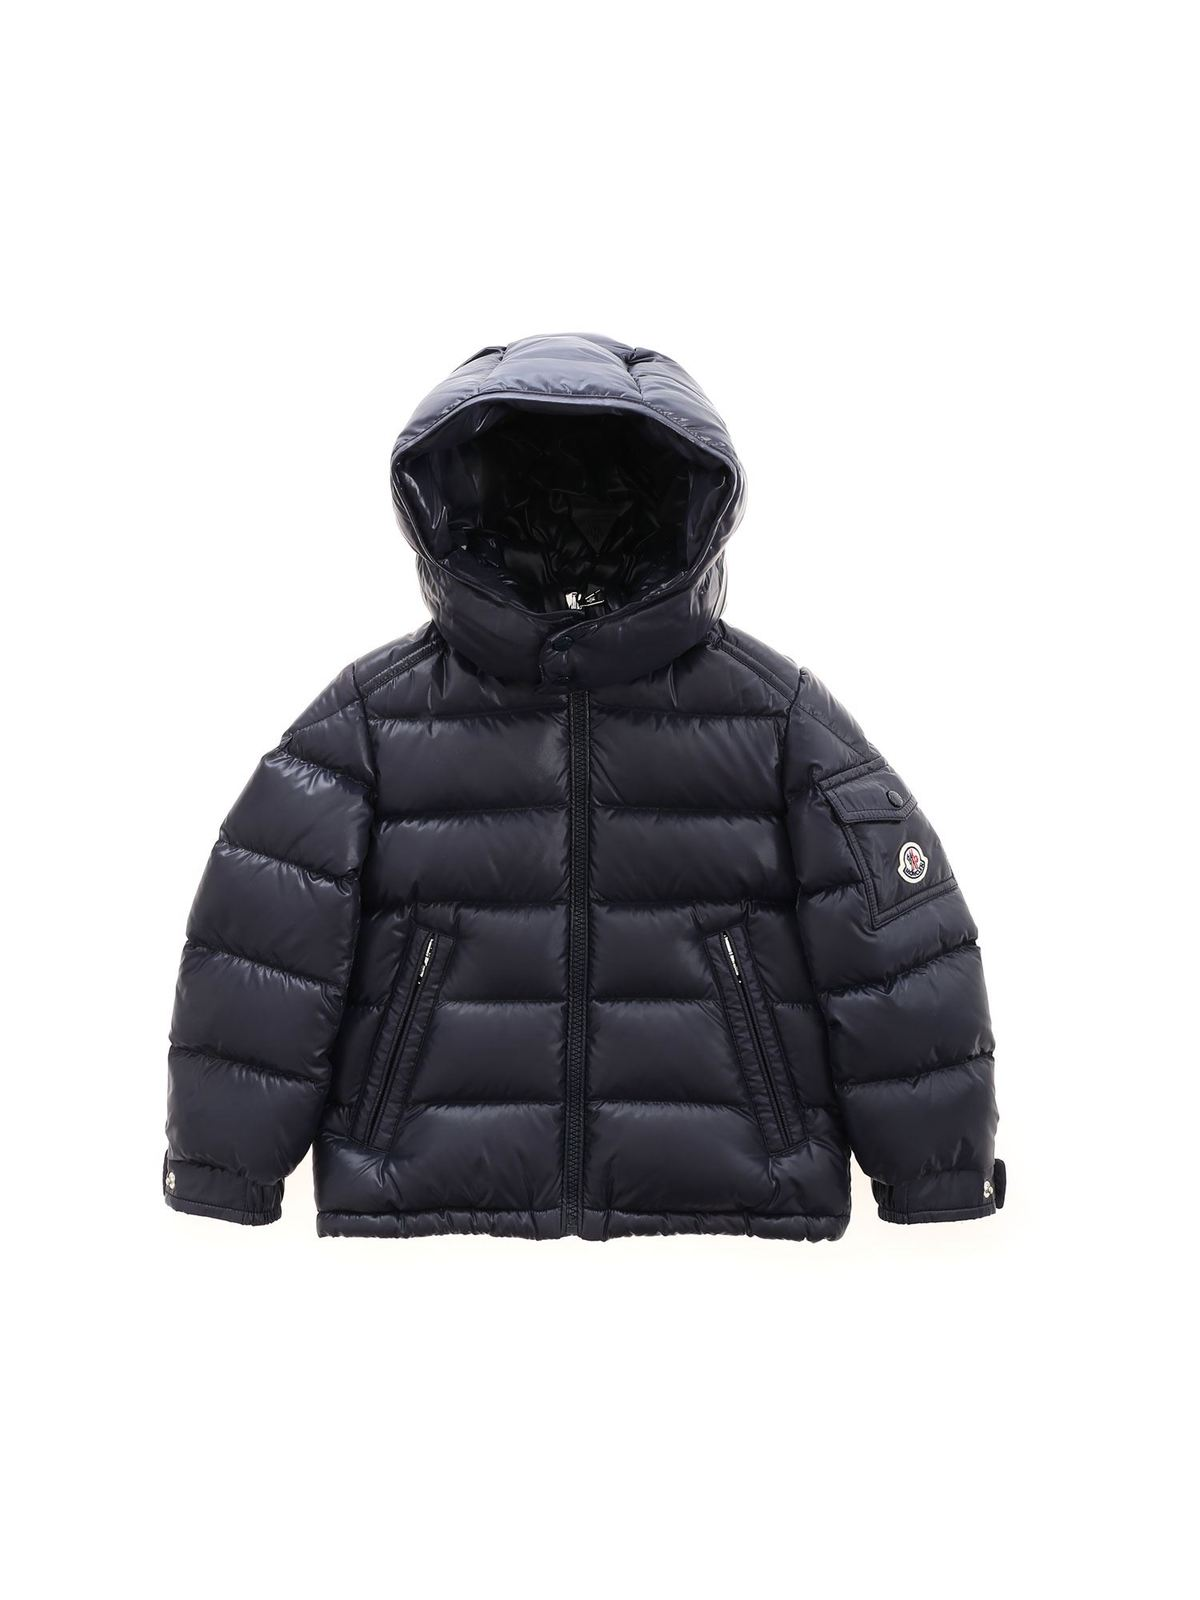 MONCLER JR NEW MAYA DOWN JACKET IN BLUE